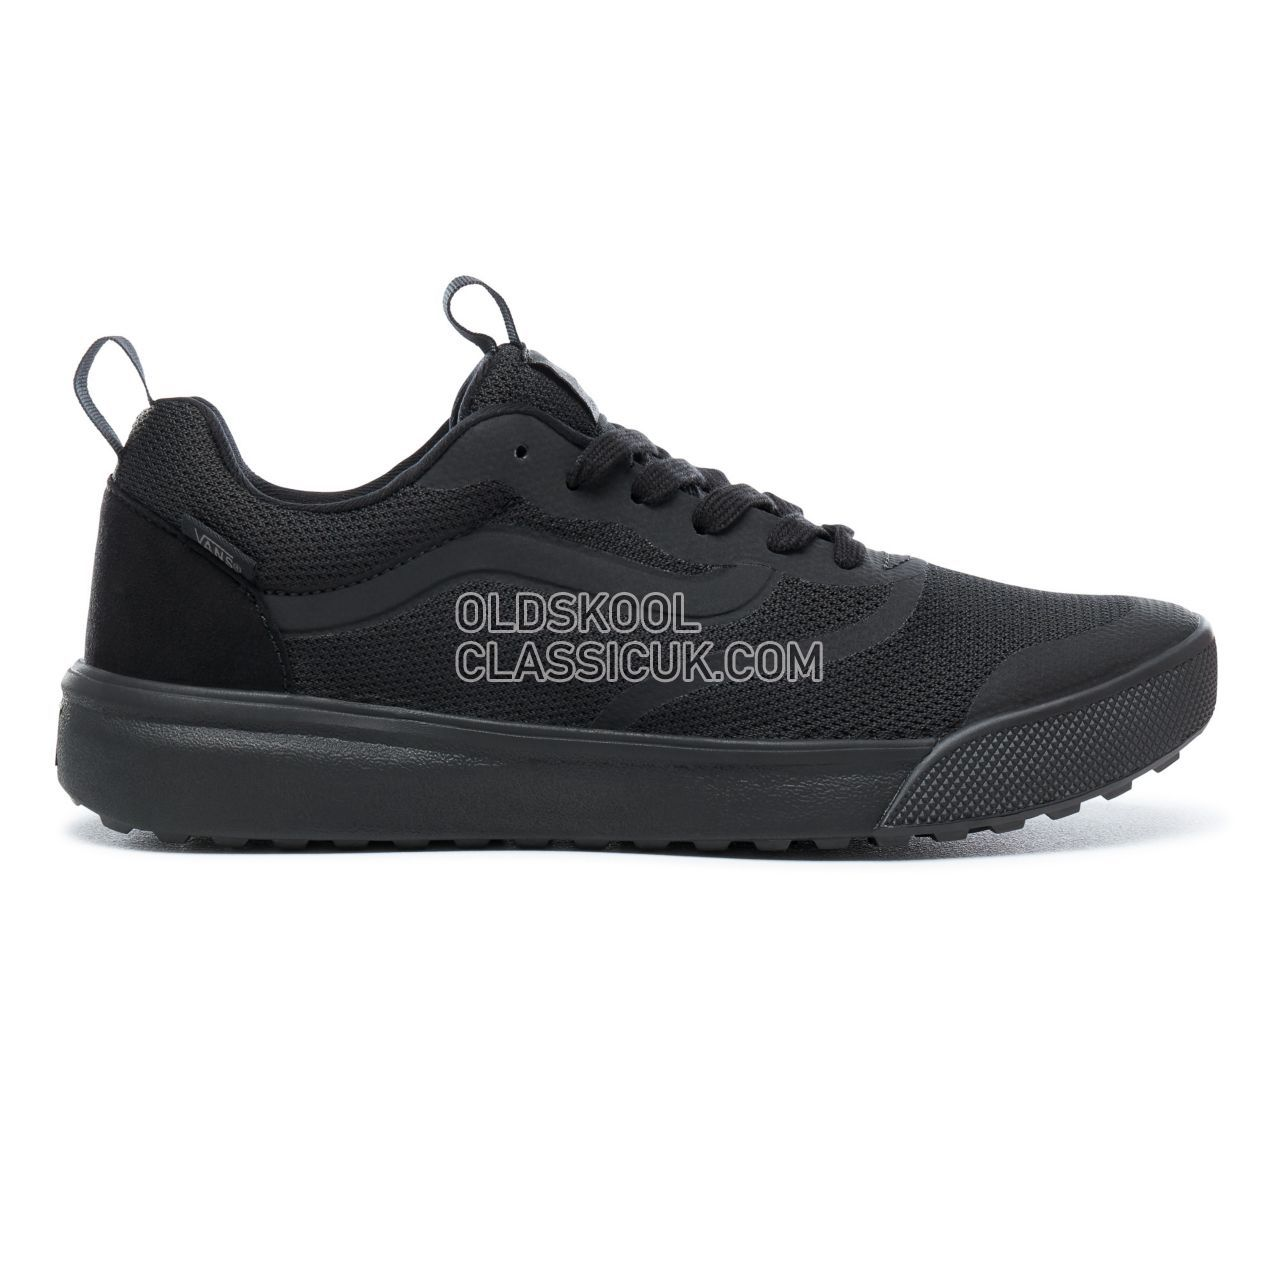 Vans Ultrarange Rapidweld Sneakers Mens Black VA3MVUBKA Shoes